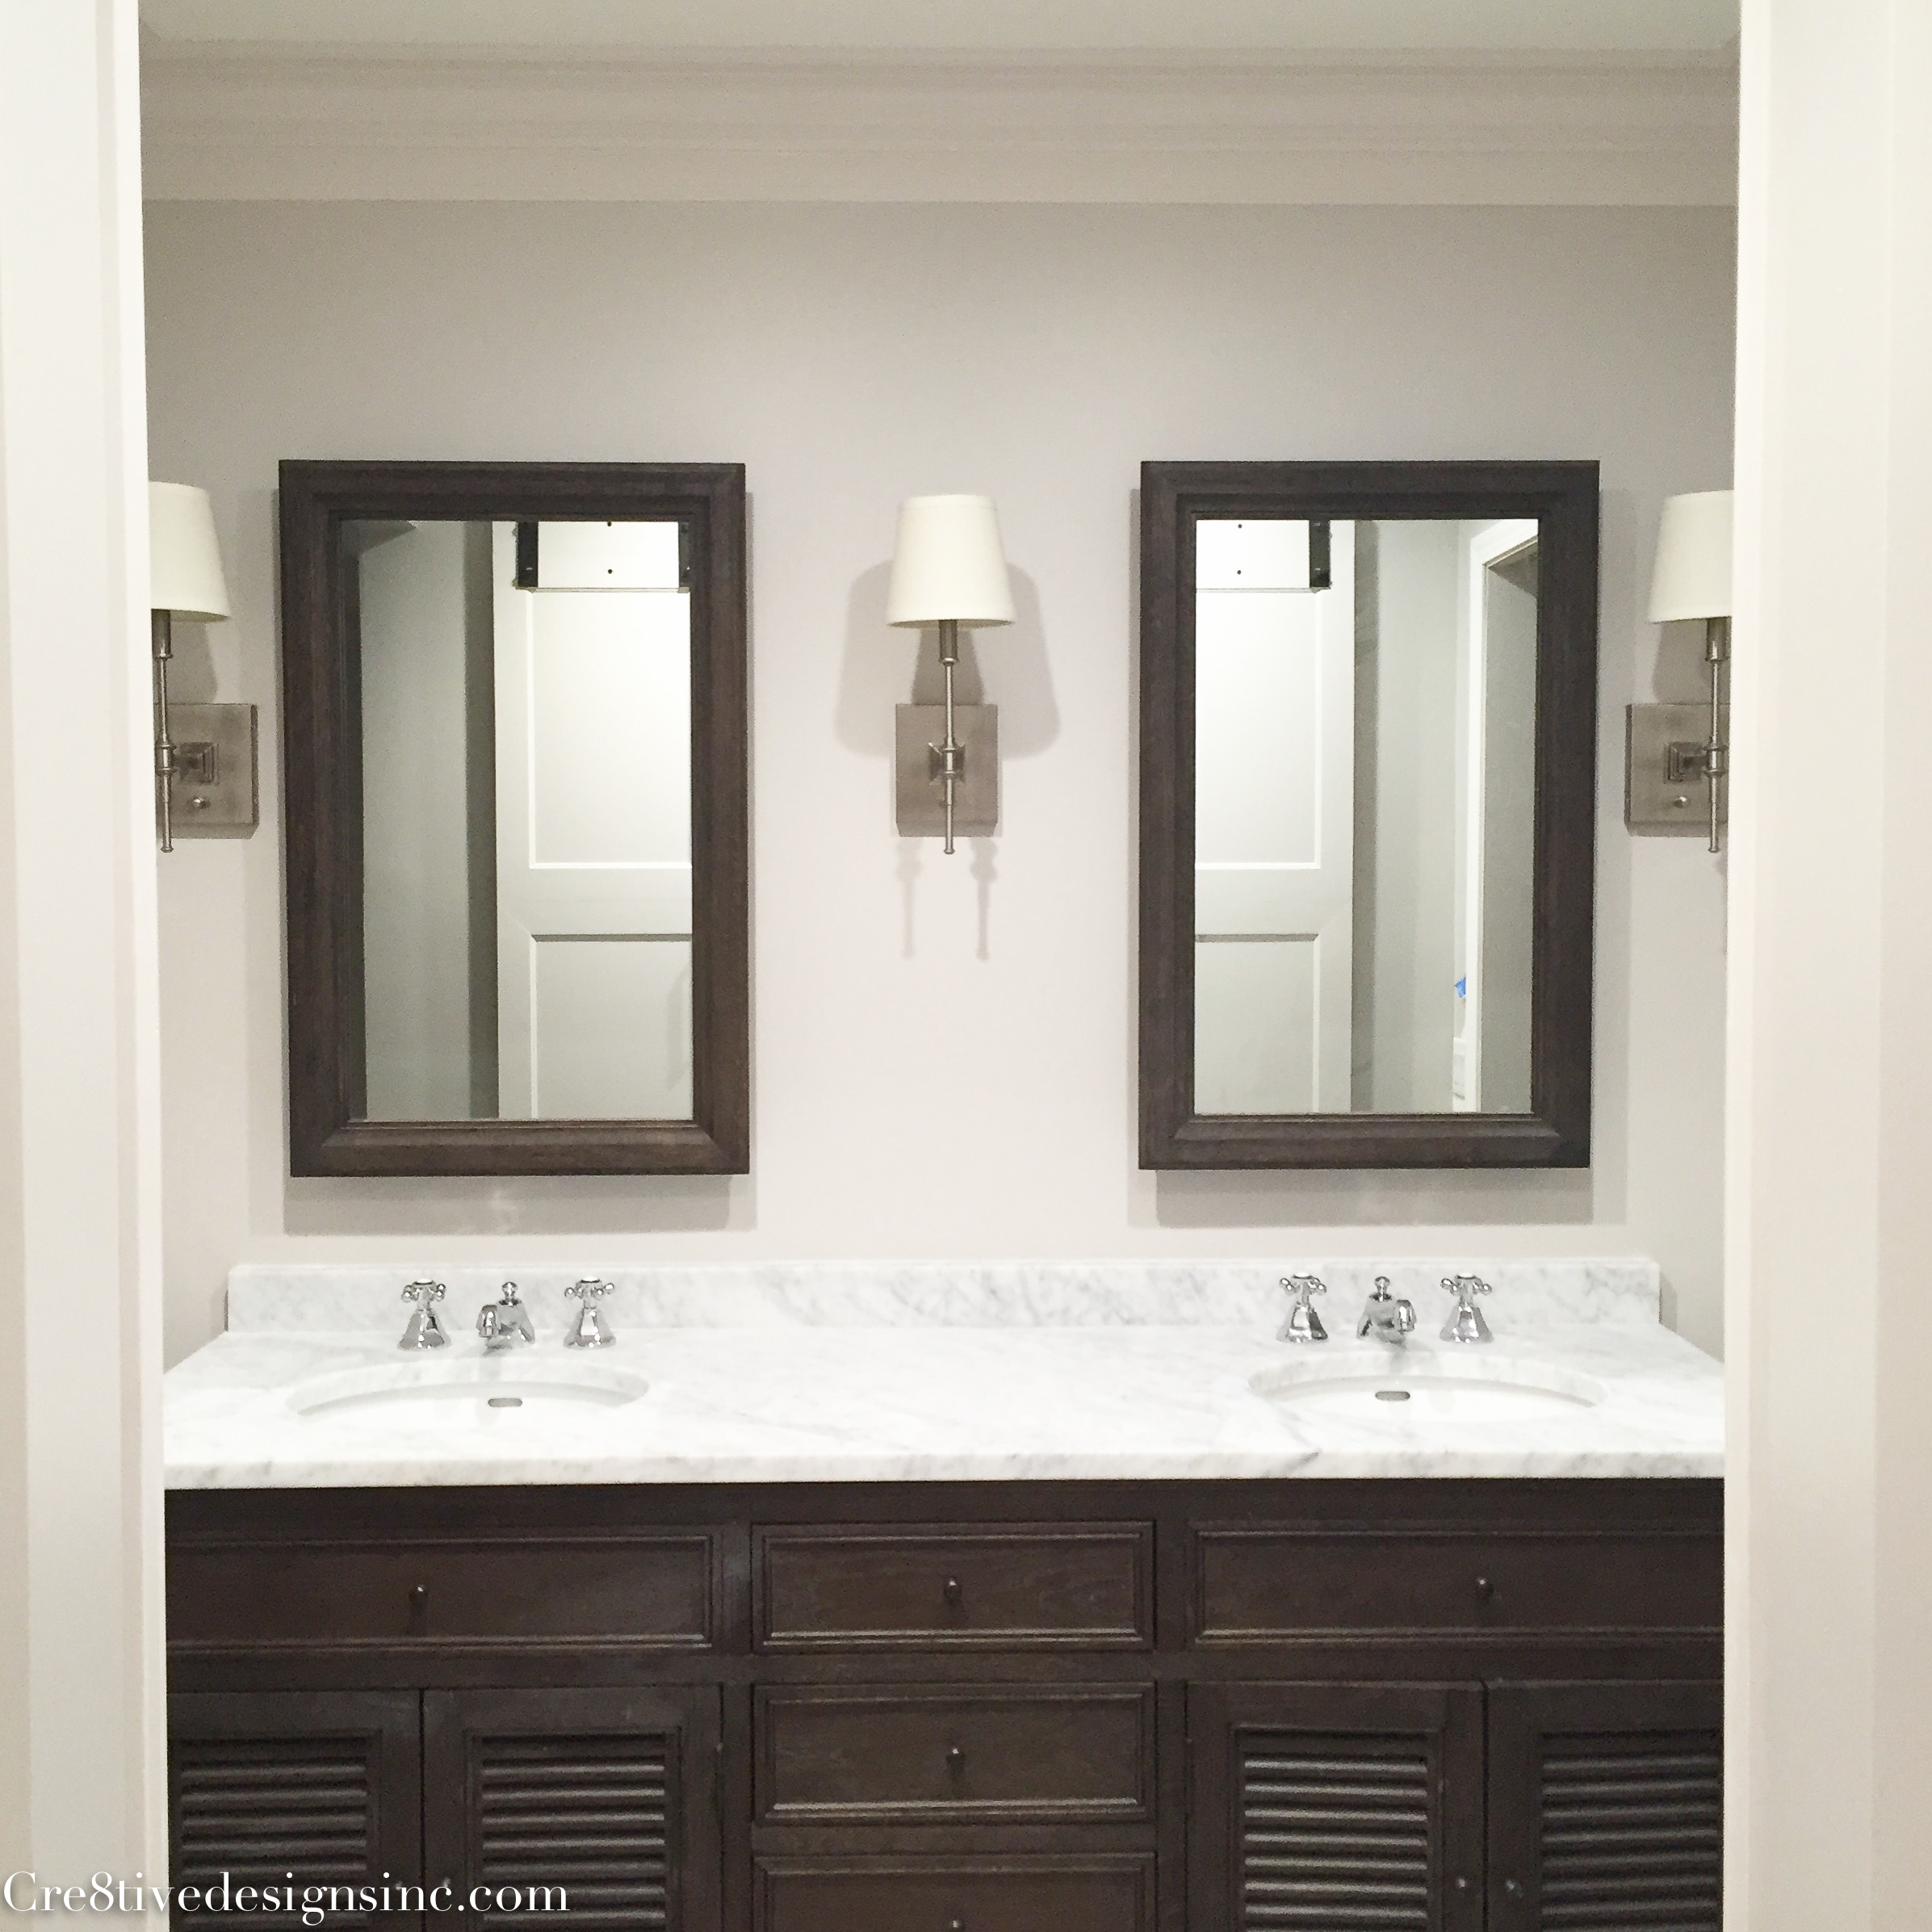 Delectable 60 1950s bathroom remodel before and after for Master bath remodel 2016